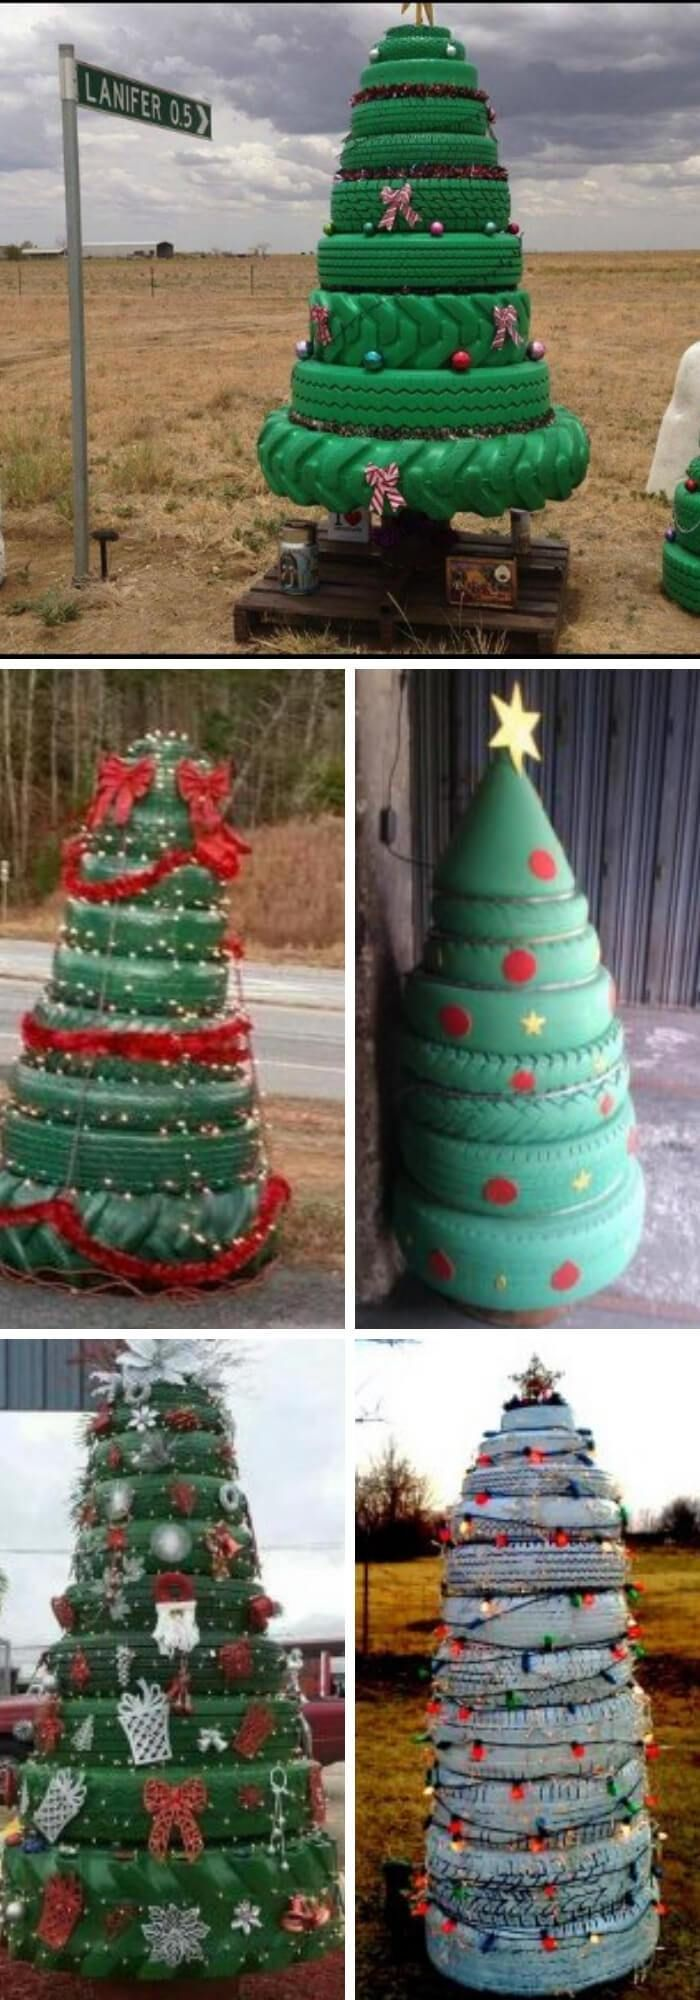 Recycle Christmas Lights 2020 Near Me 13 Best Recycled Tire Christmas Decoration Ideas For 2020